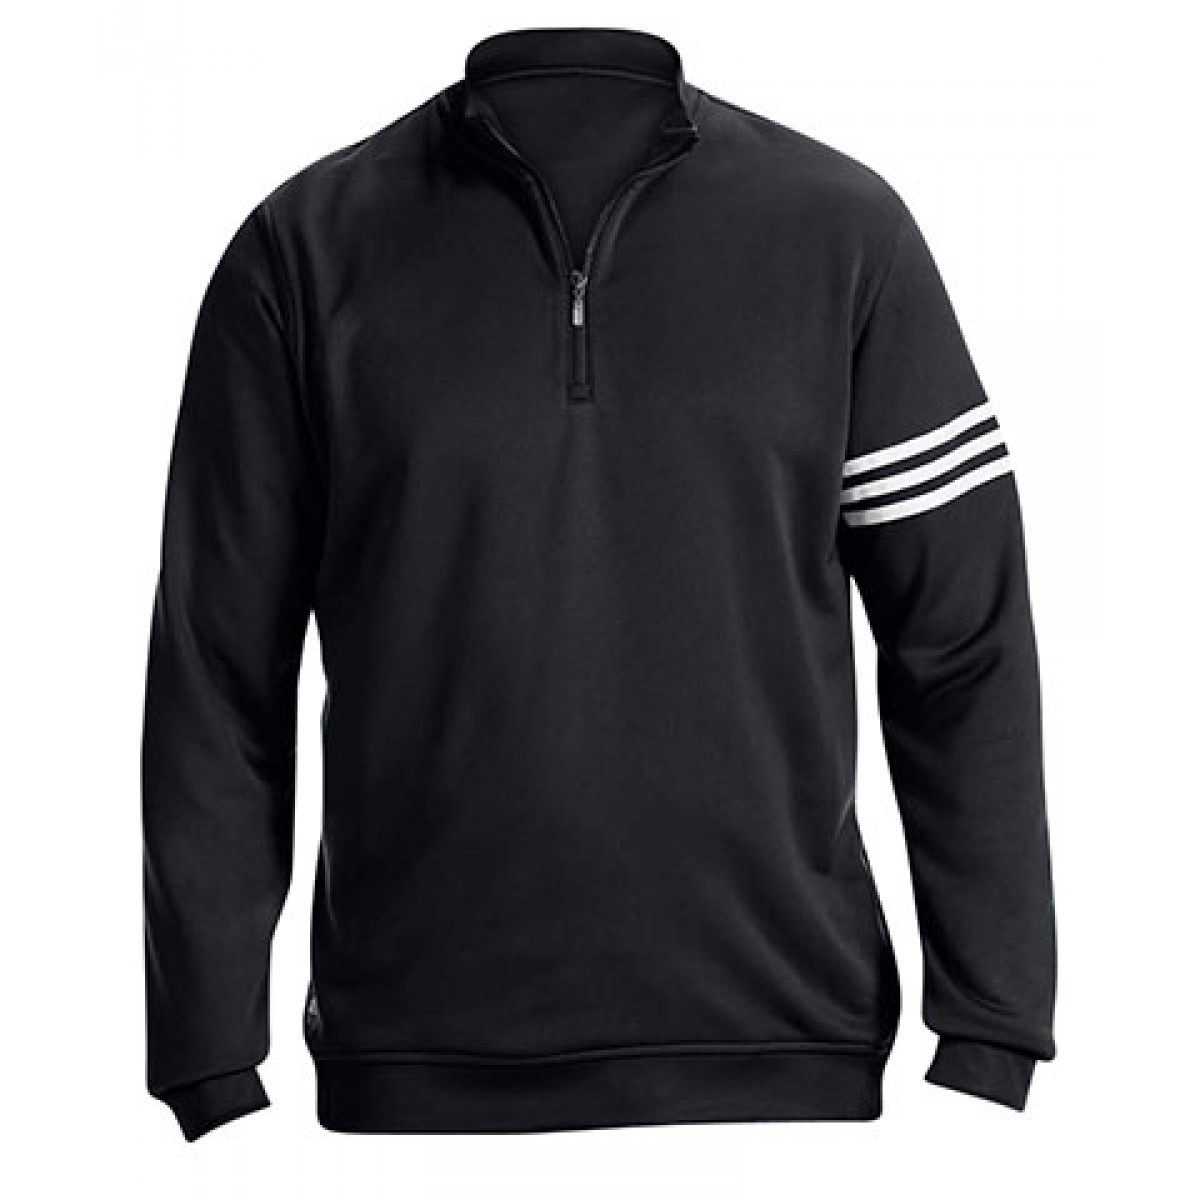 Adidas Golf Men's ClimaLite® 3-Stripes Pullover-Black-M